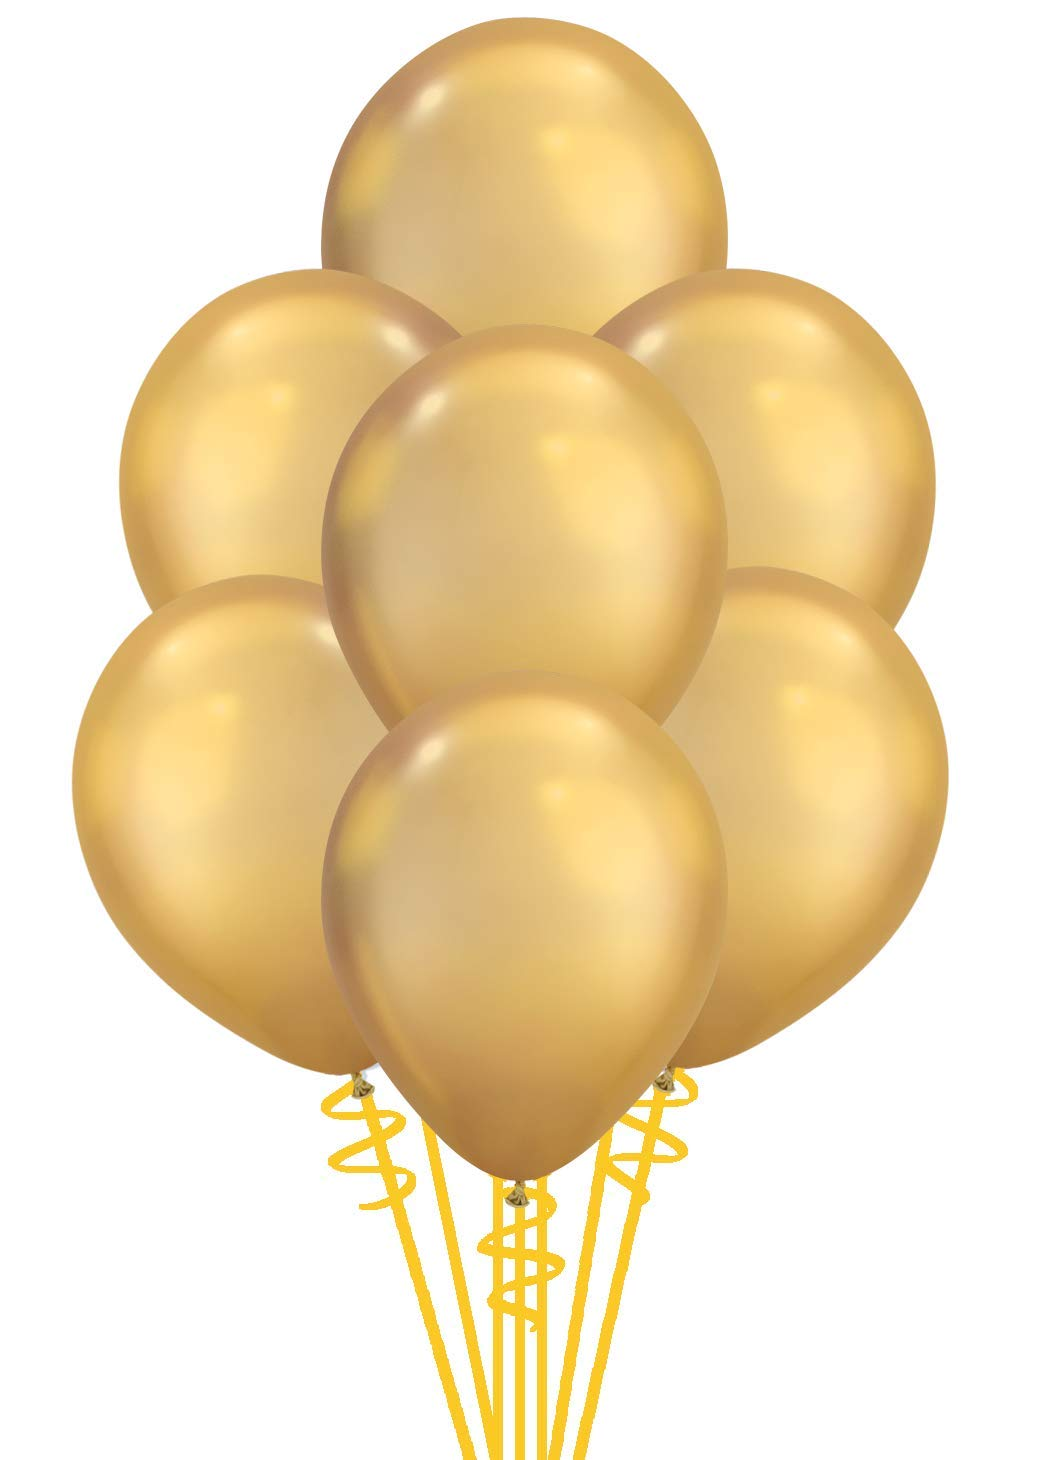 Qualatex Solid Shine Chrome Gold Biodegradable Latex Balloons, 11-Inches, 100-Units per pack (1-Pack)